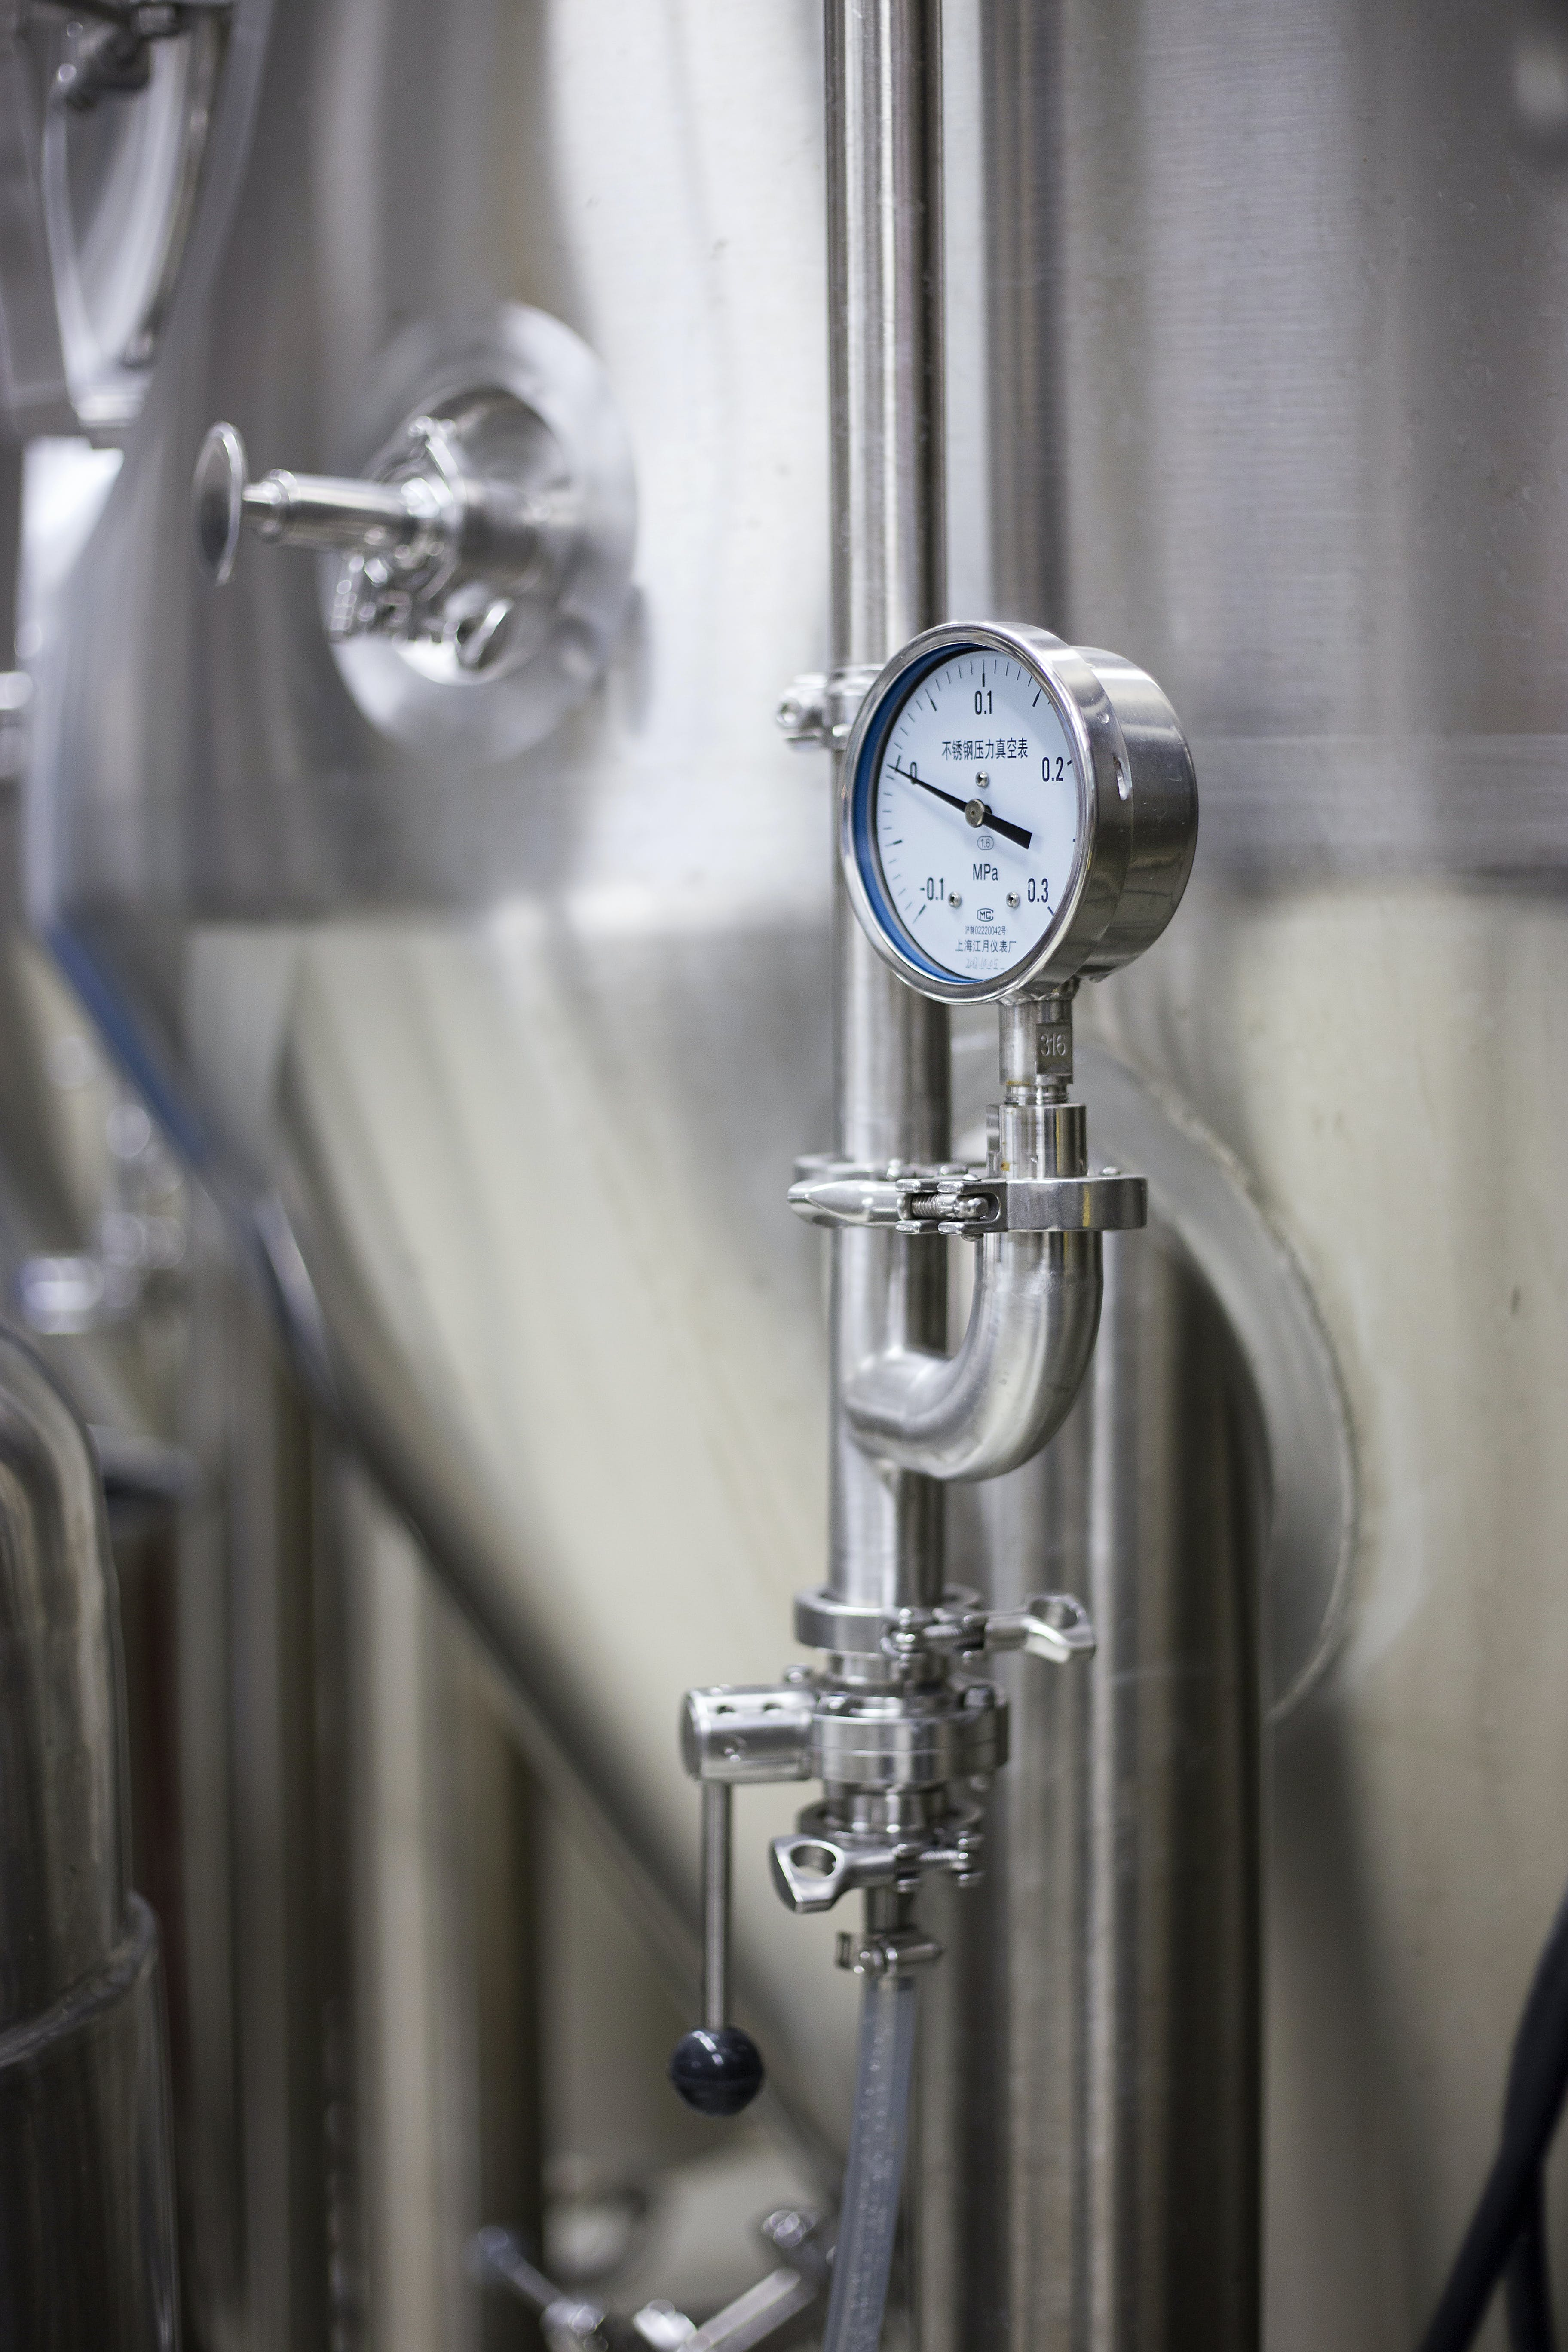 20 BBL Ferementors - jacketed - sold by BC Packaging Service Brew-Stuff